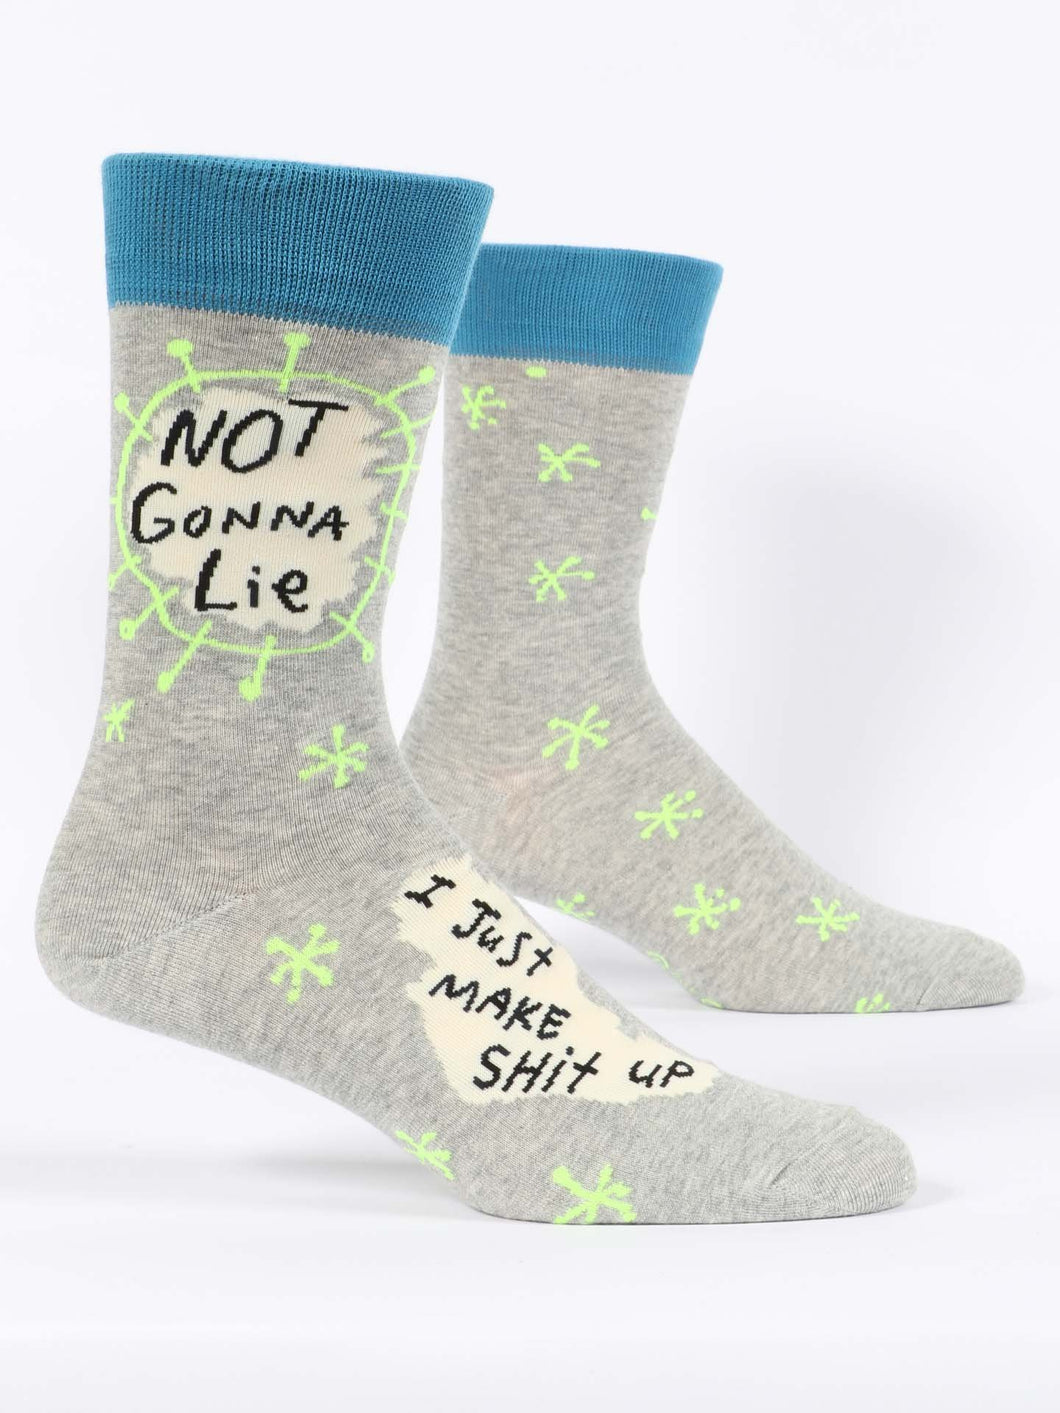 Not Gonna Lie I Just Make Shit Up Men's Crew Socks